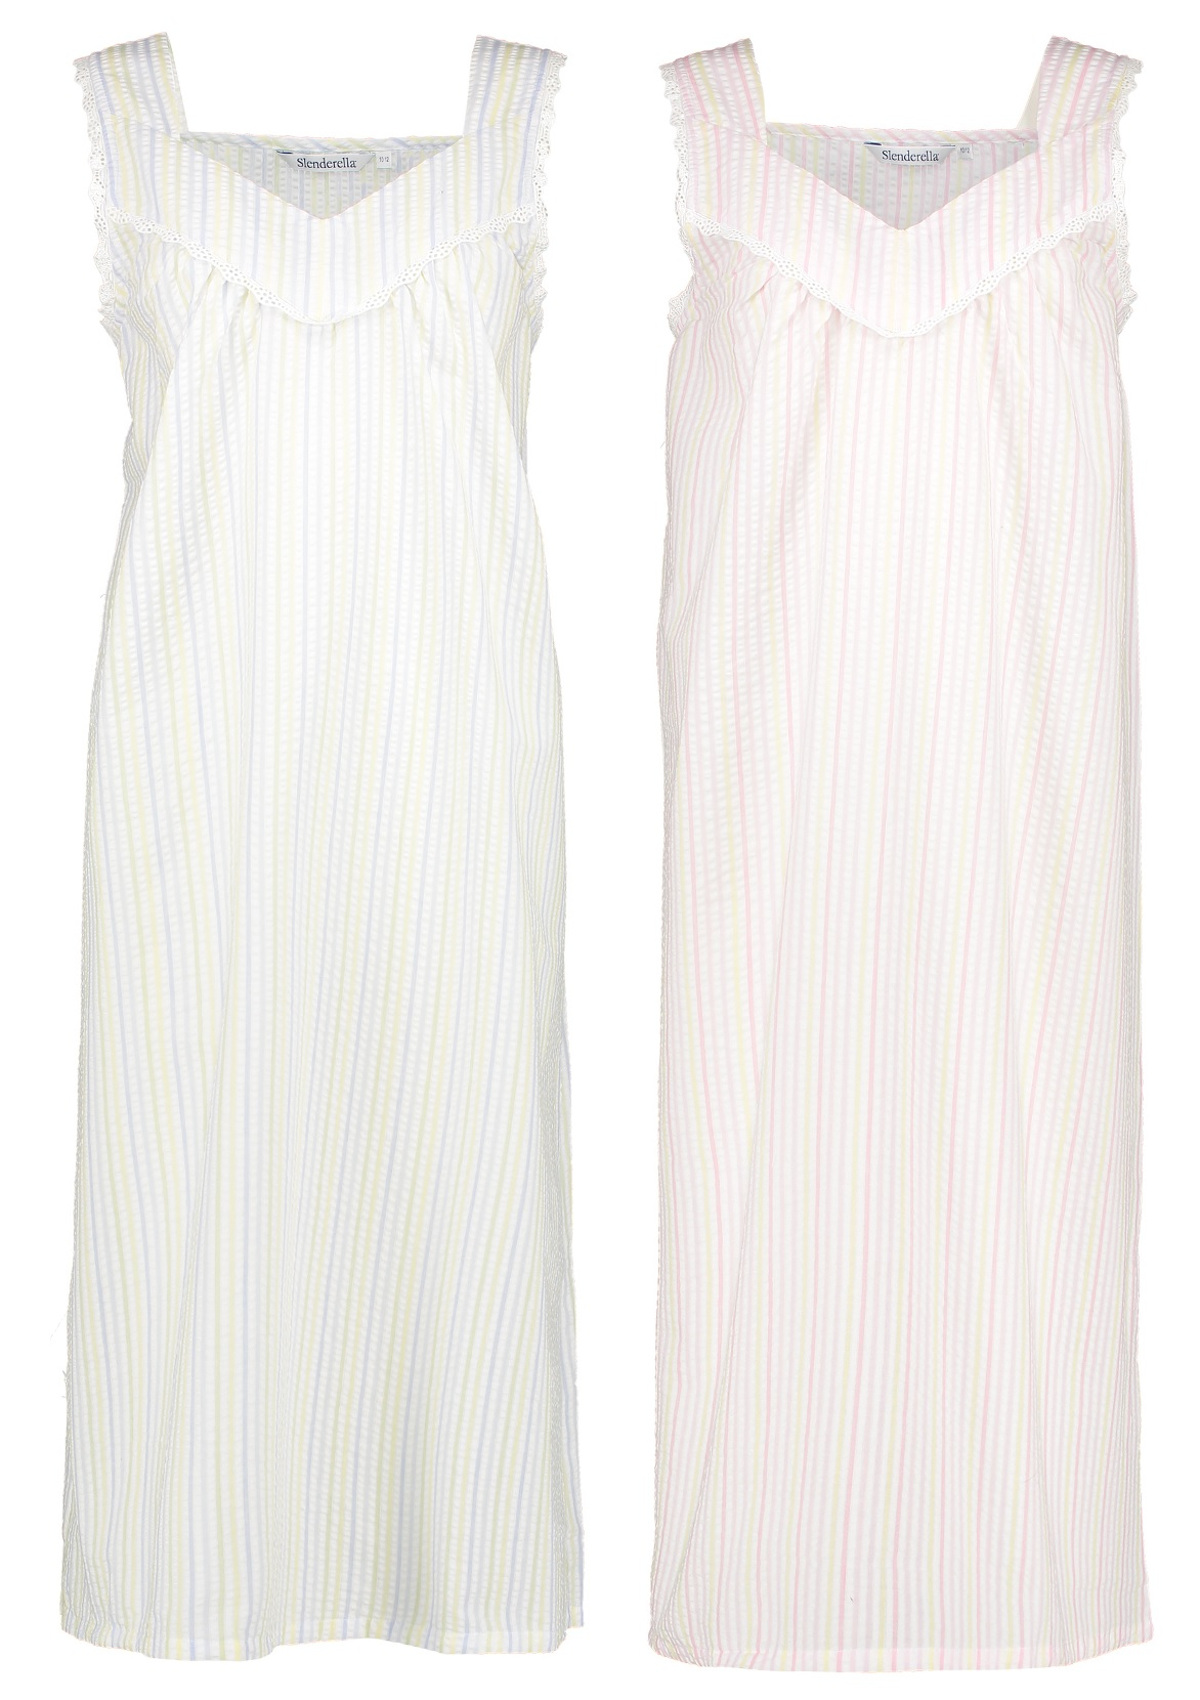 Ladies Nightdress Slenderella Seersucker Stripe Broad Strap Nightie Lace Trim